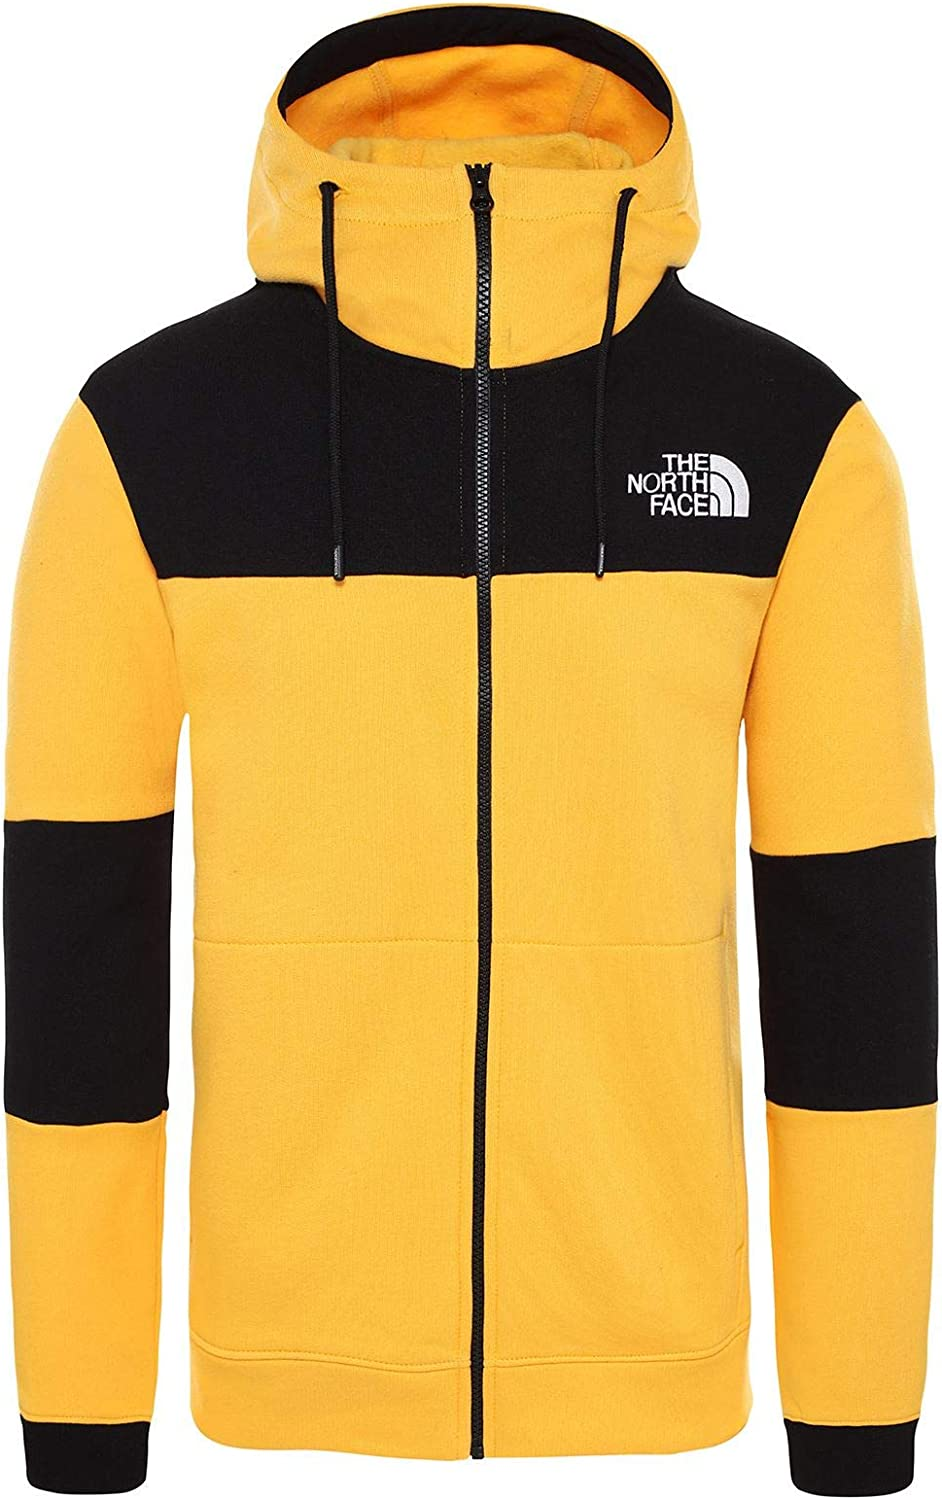 THE NORTH FACE Himalayan Fullzip Sports Jacket